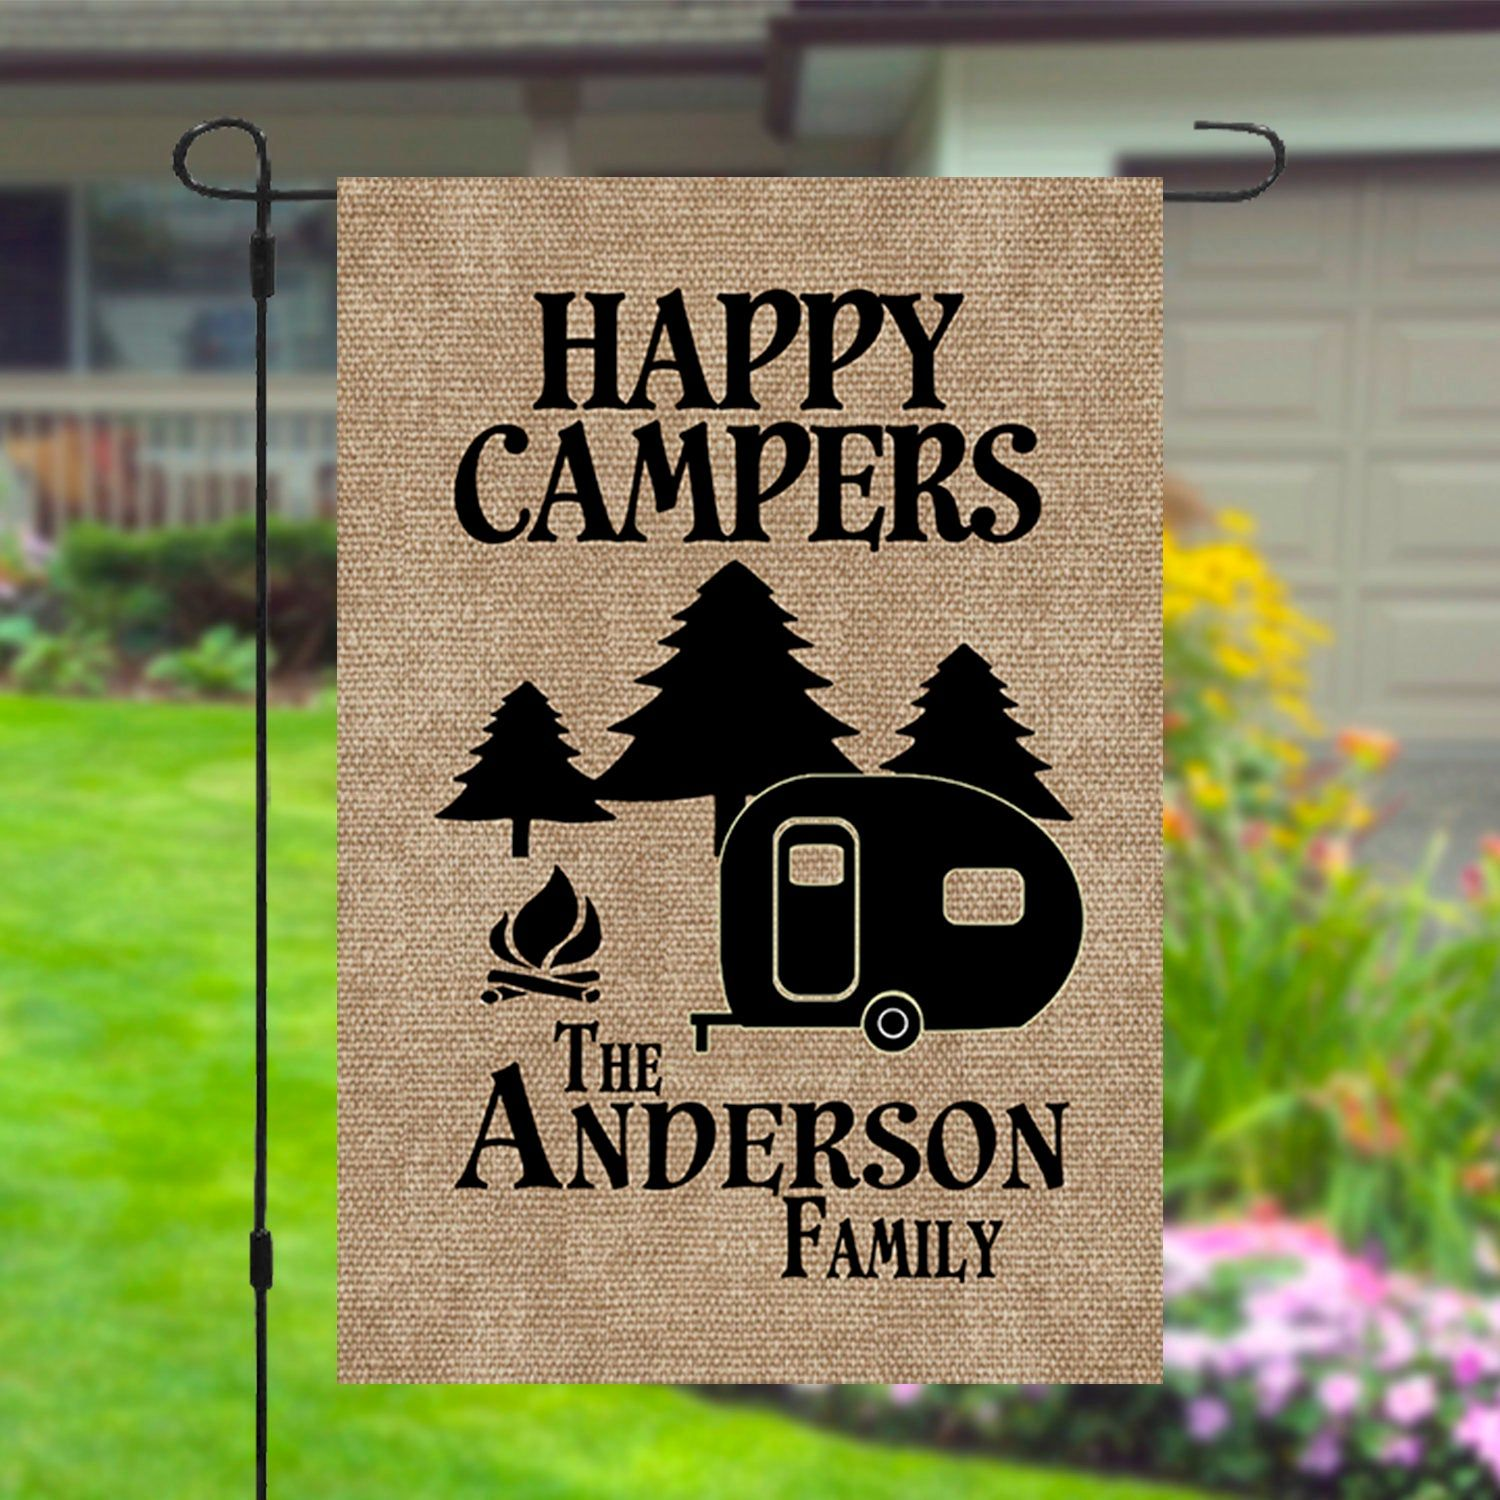 Happy Campers Personalized Custom Family Name Garden Banner Etsy In 2020 Happy Campers Personalized Camping Personalized Custom